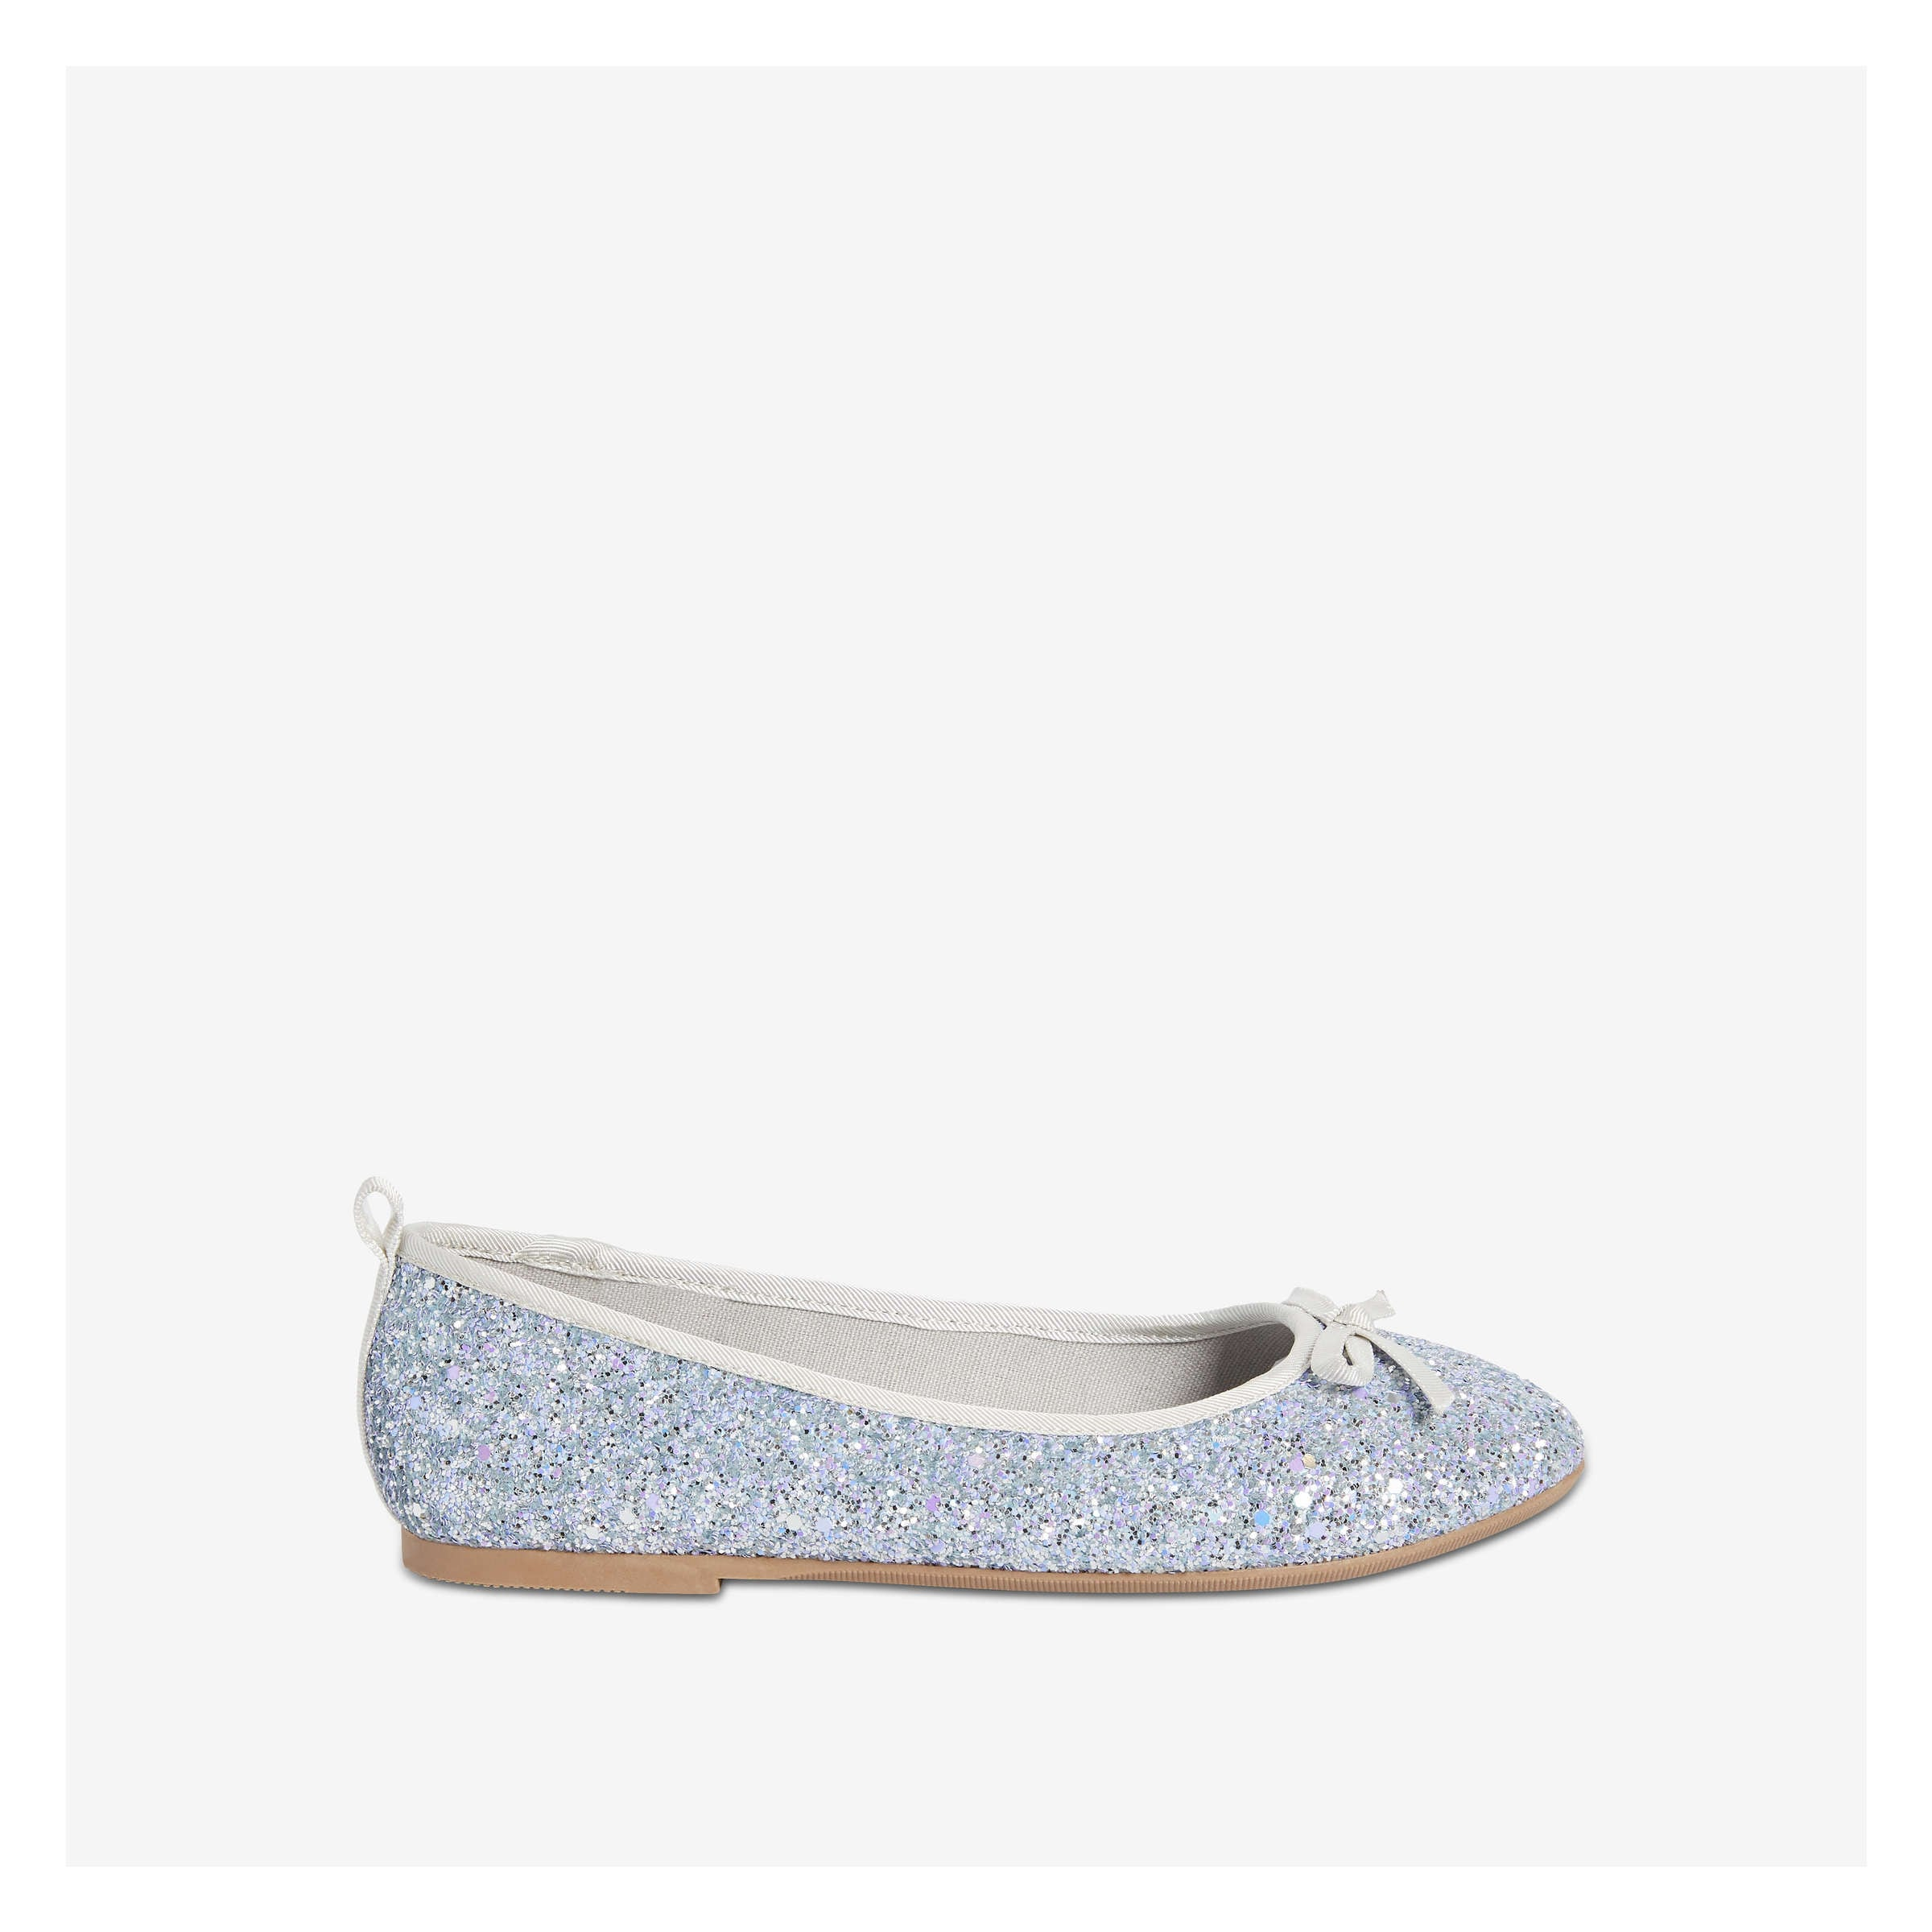 d89024cefb Joe Fresh Kid Girls' Glitter Ballet Flat